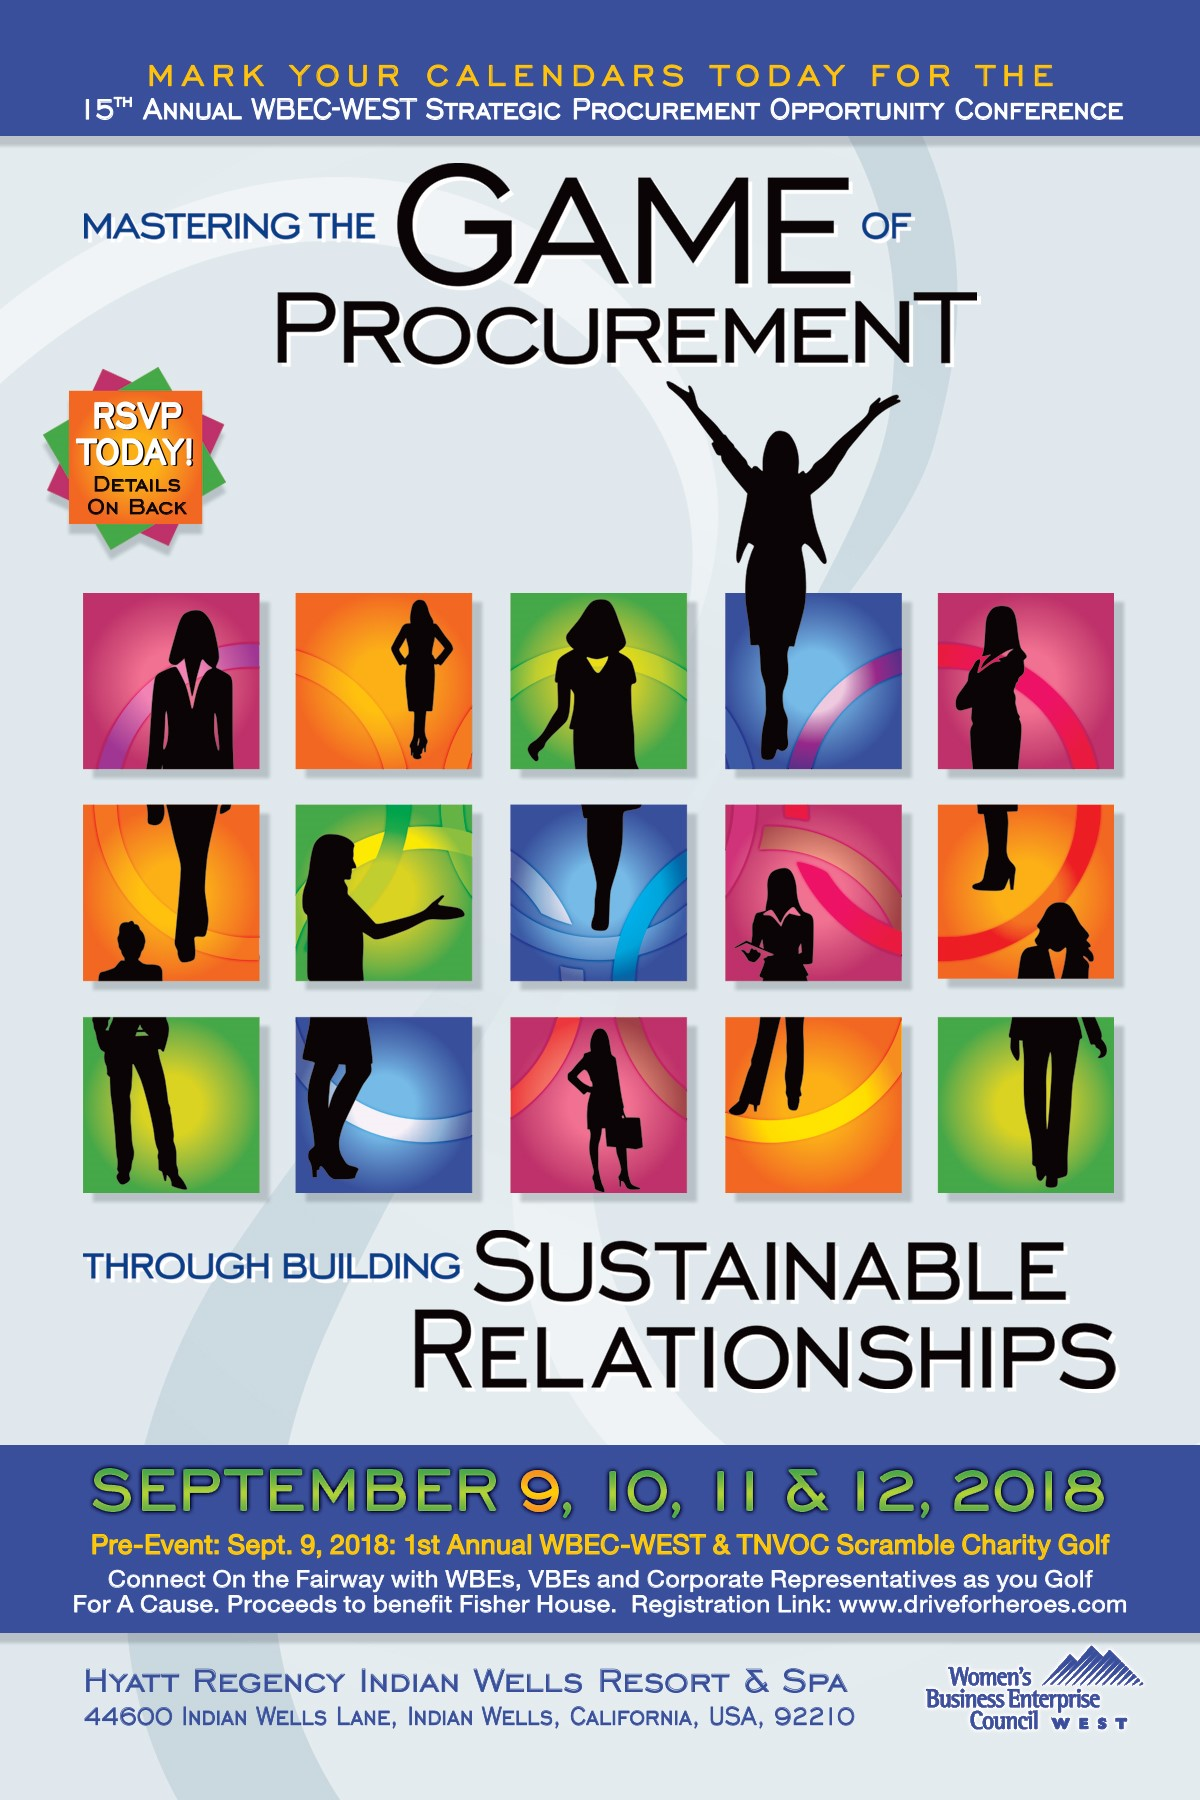 15th Annual Strategic Procurement Opportunity Conference & Awards Conference